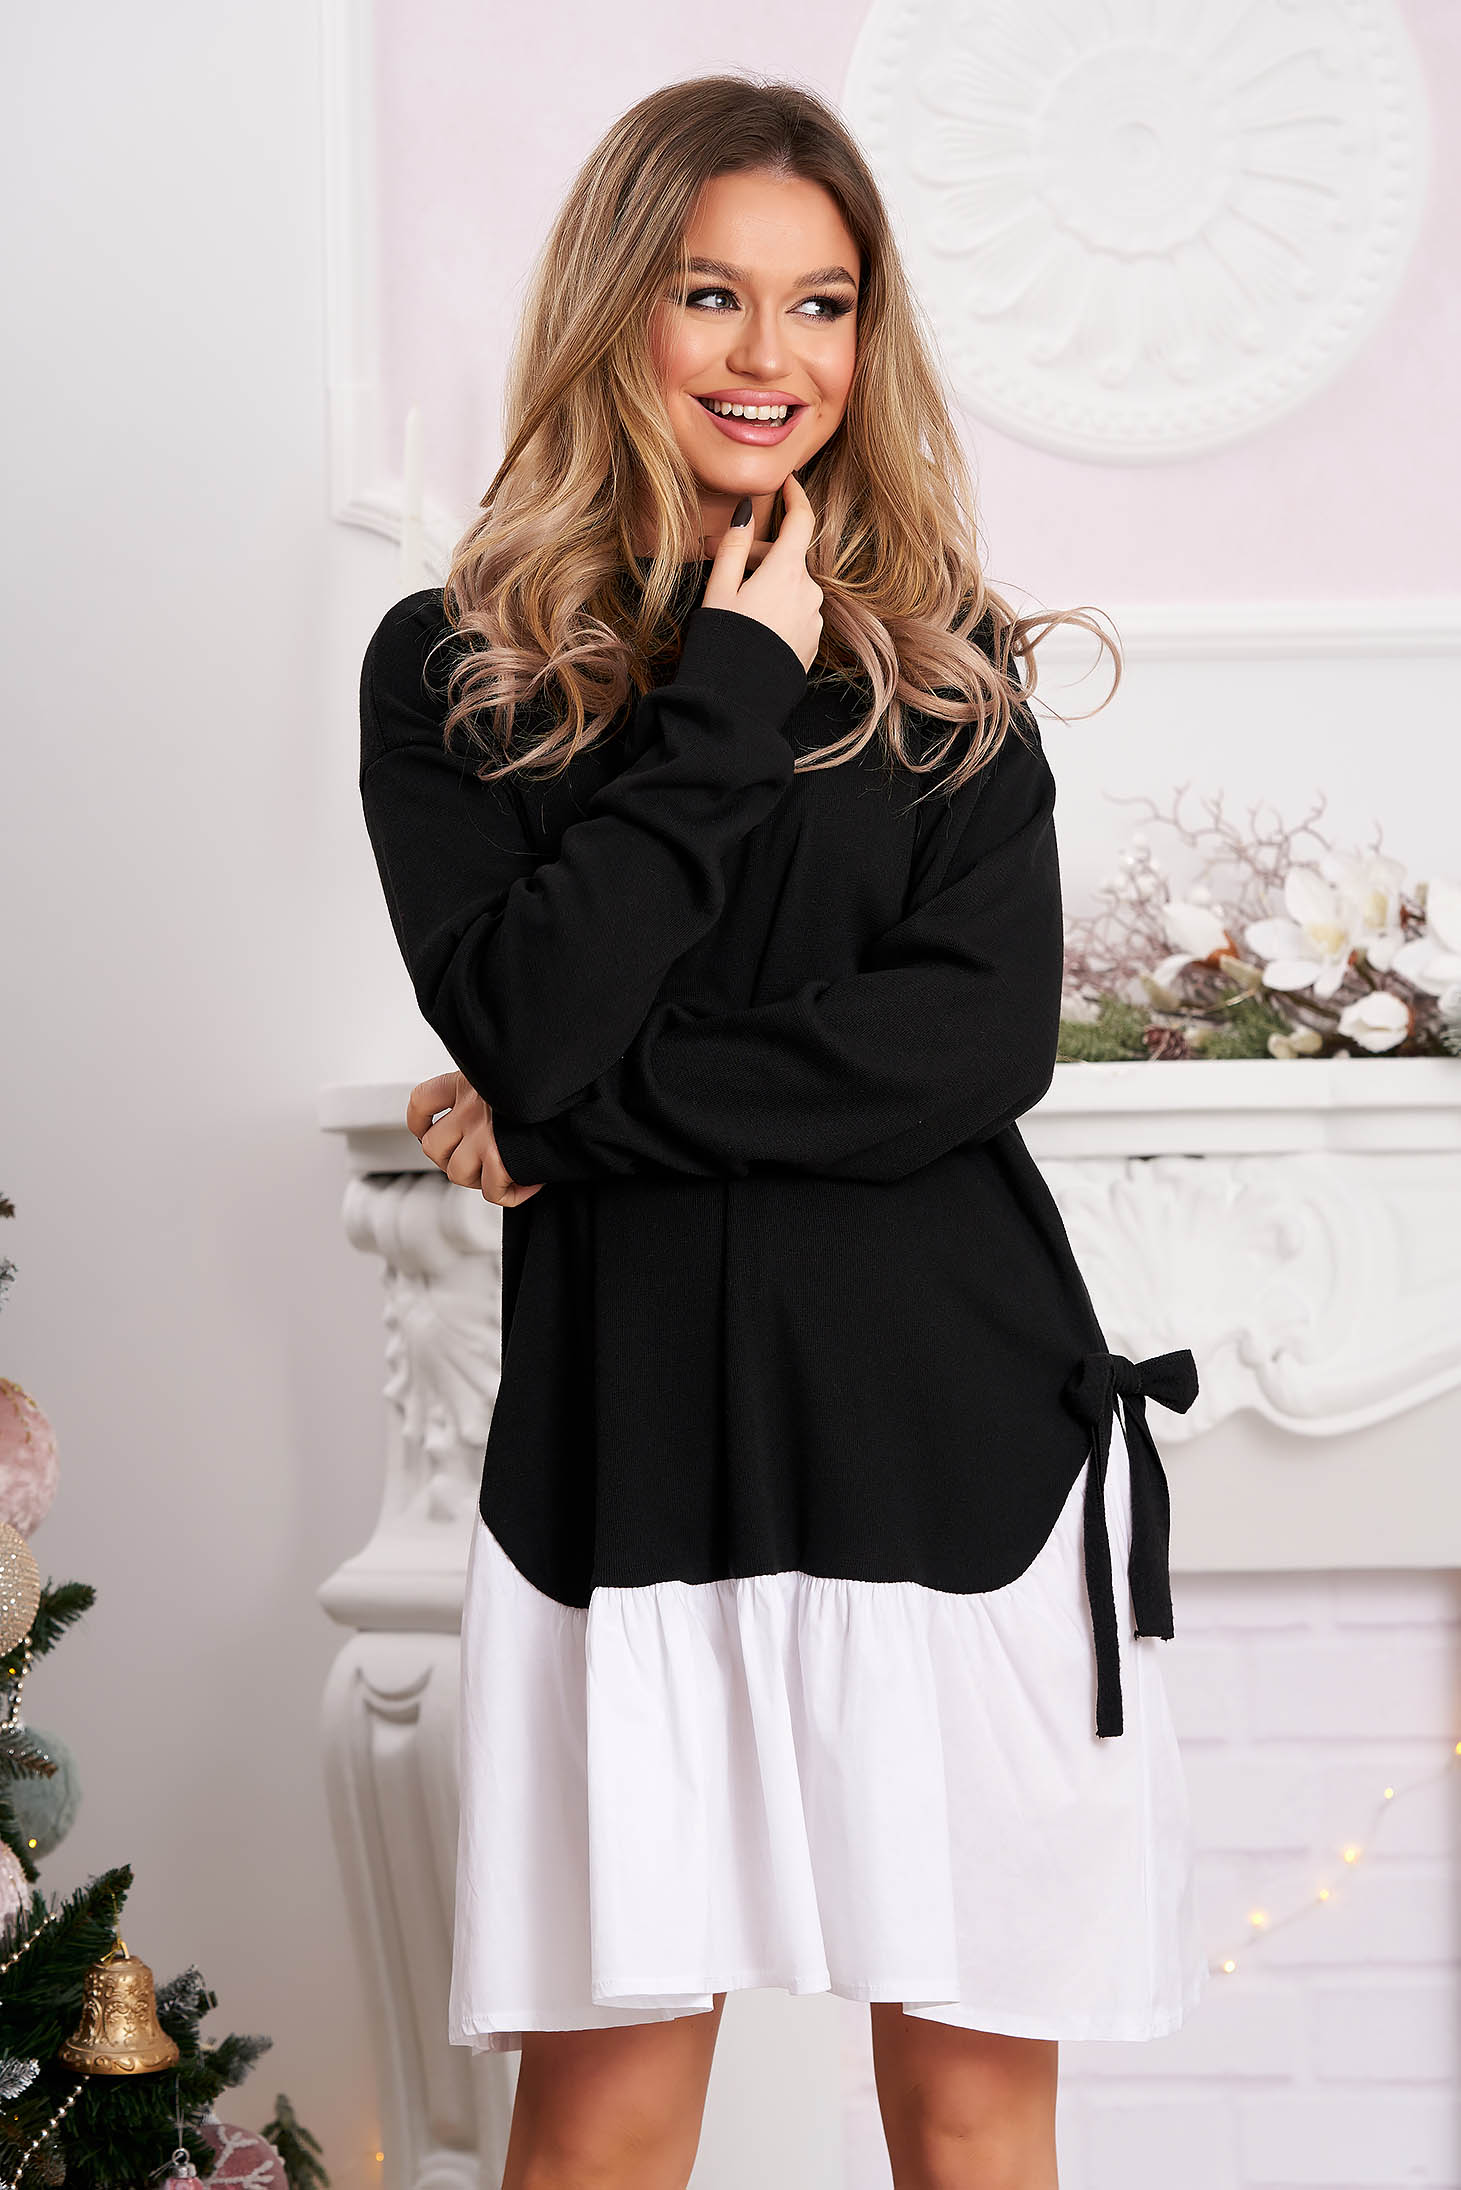 Black dress casual flared with bow accessories short cut